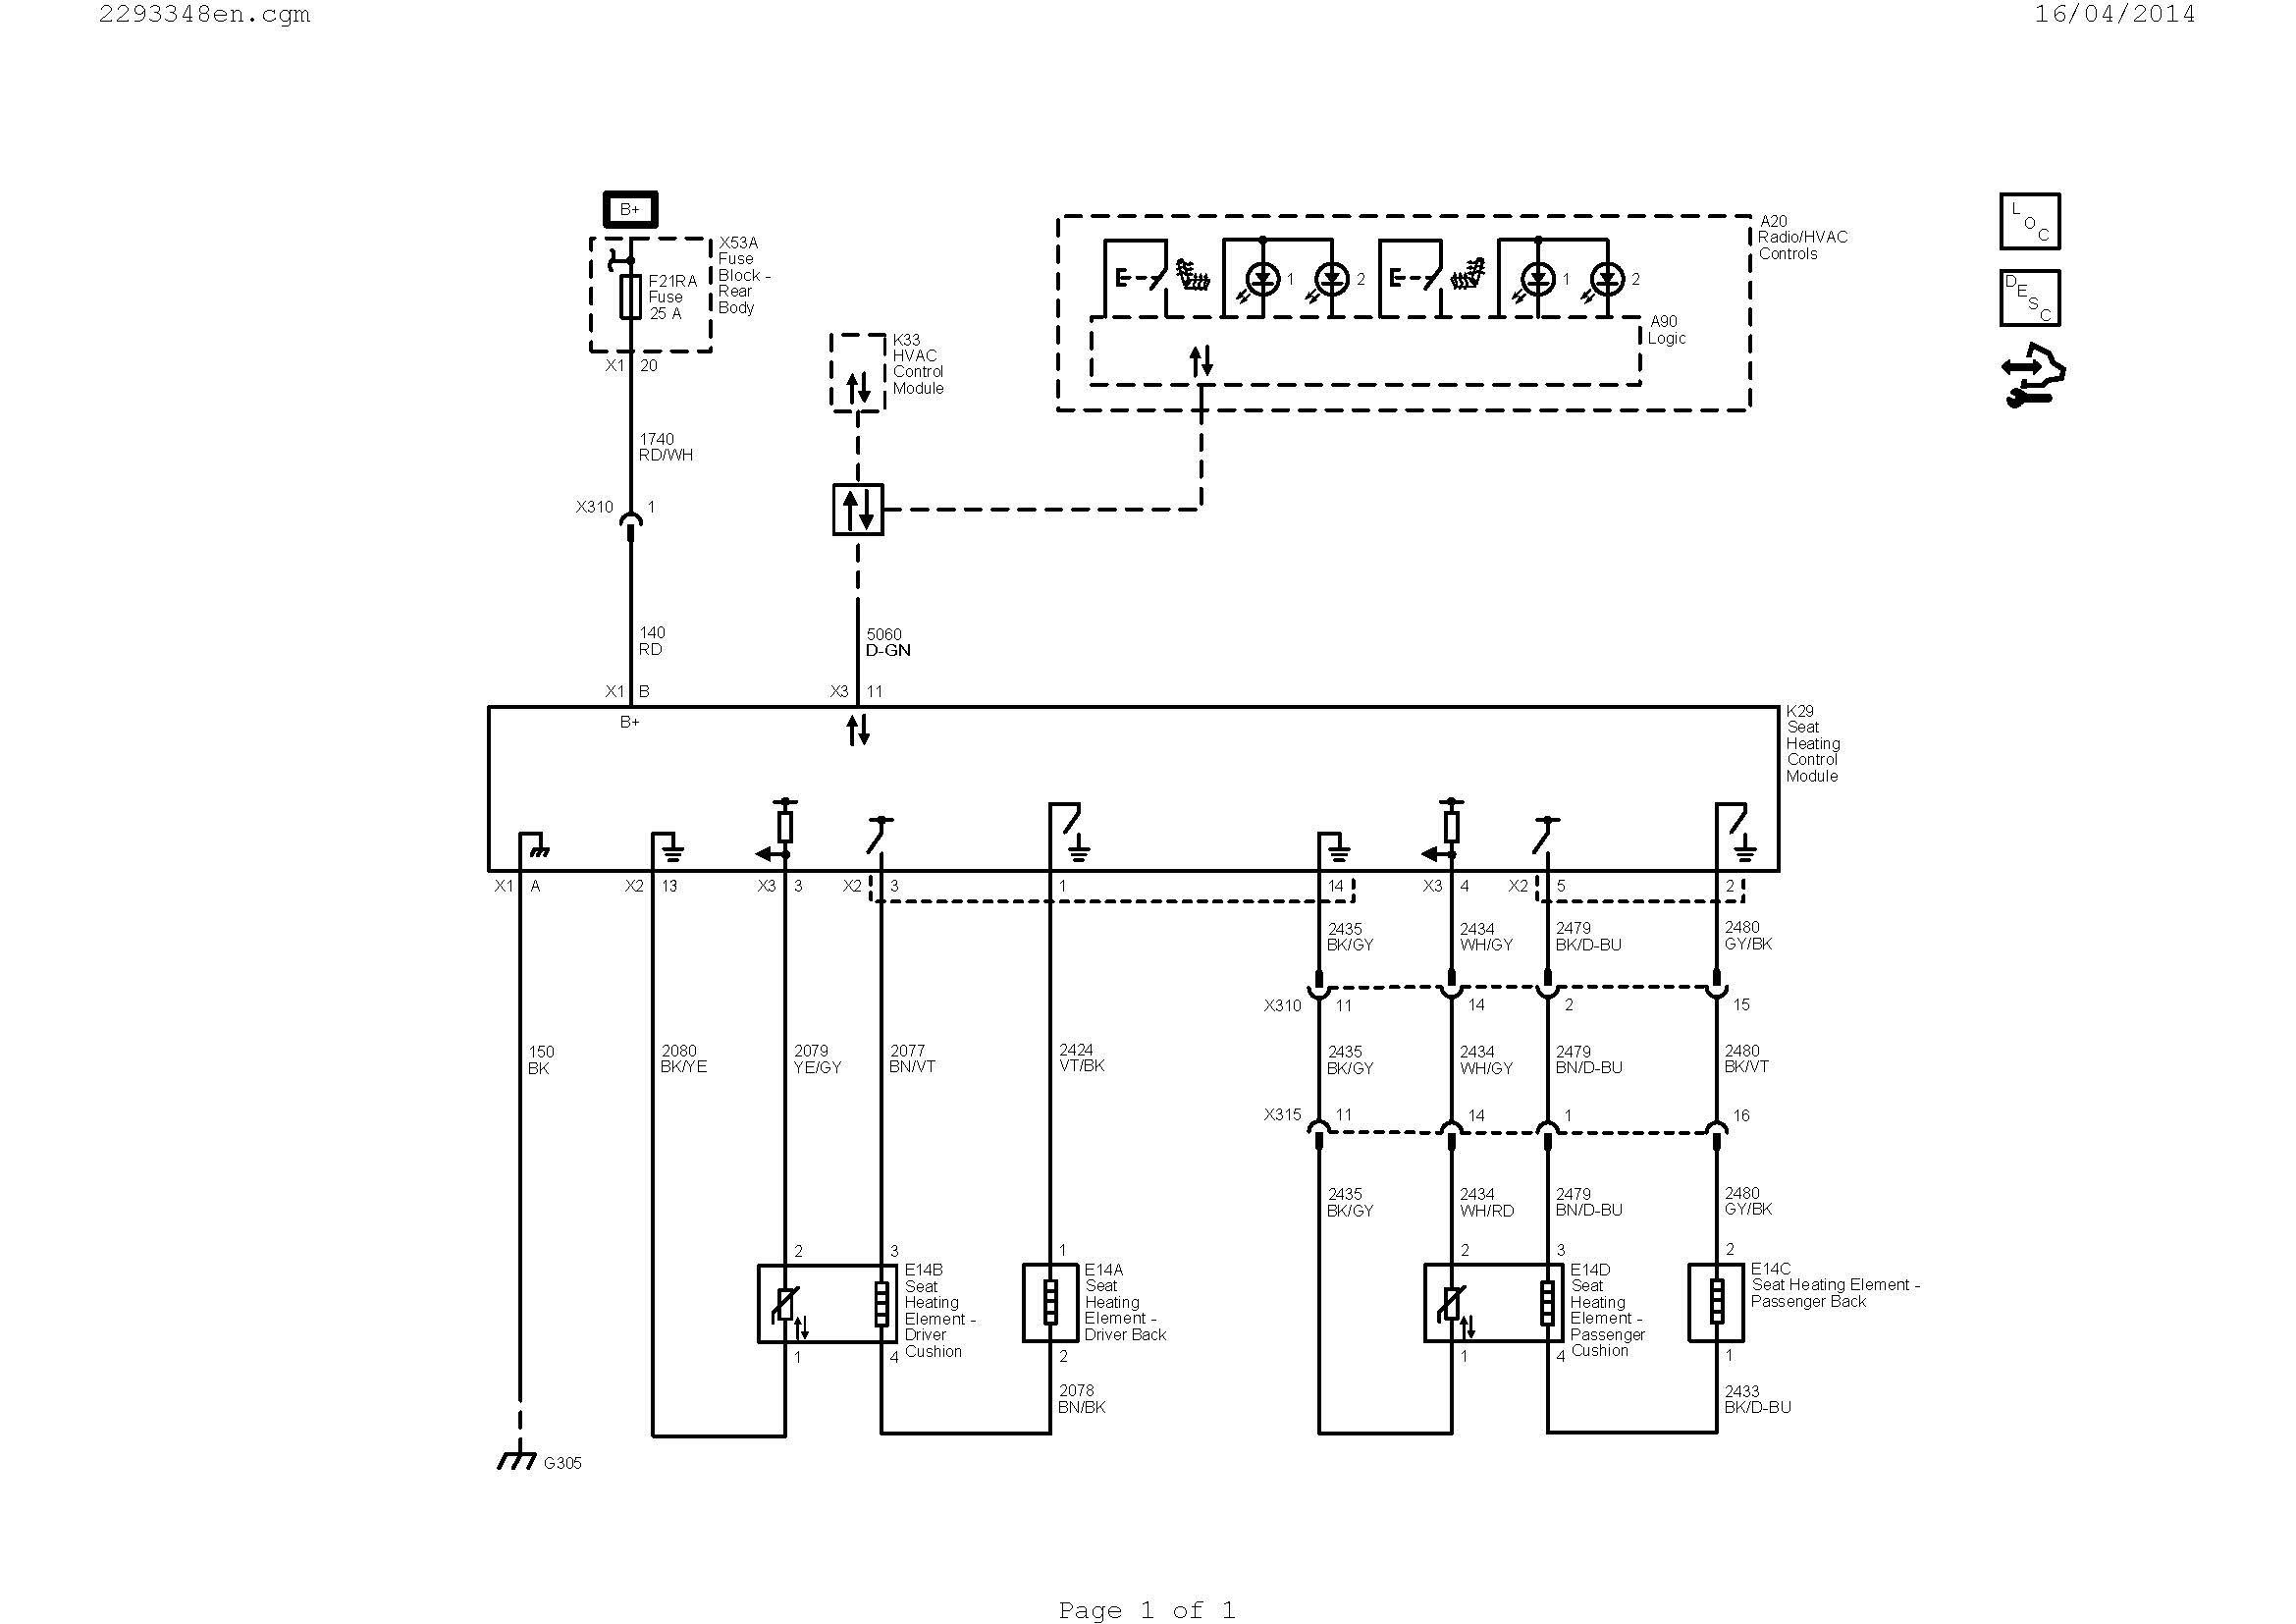 [SCHEMATICS_48ZD]  ZH_1417] Thermostat Wiring Diagrams Hvac Control Download Diagram | House Thermostat Wiring Diagrams |  | Wazos Omen Anist Numap Mohammedshrine Librar Wiring 101